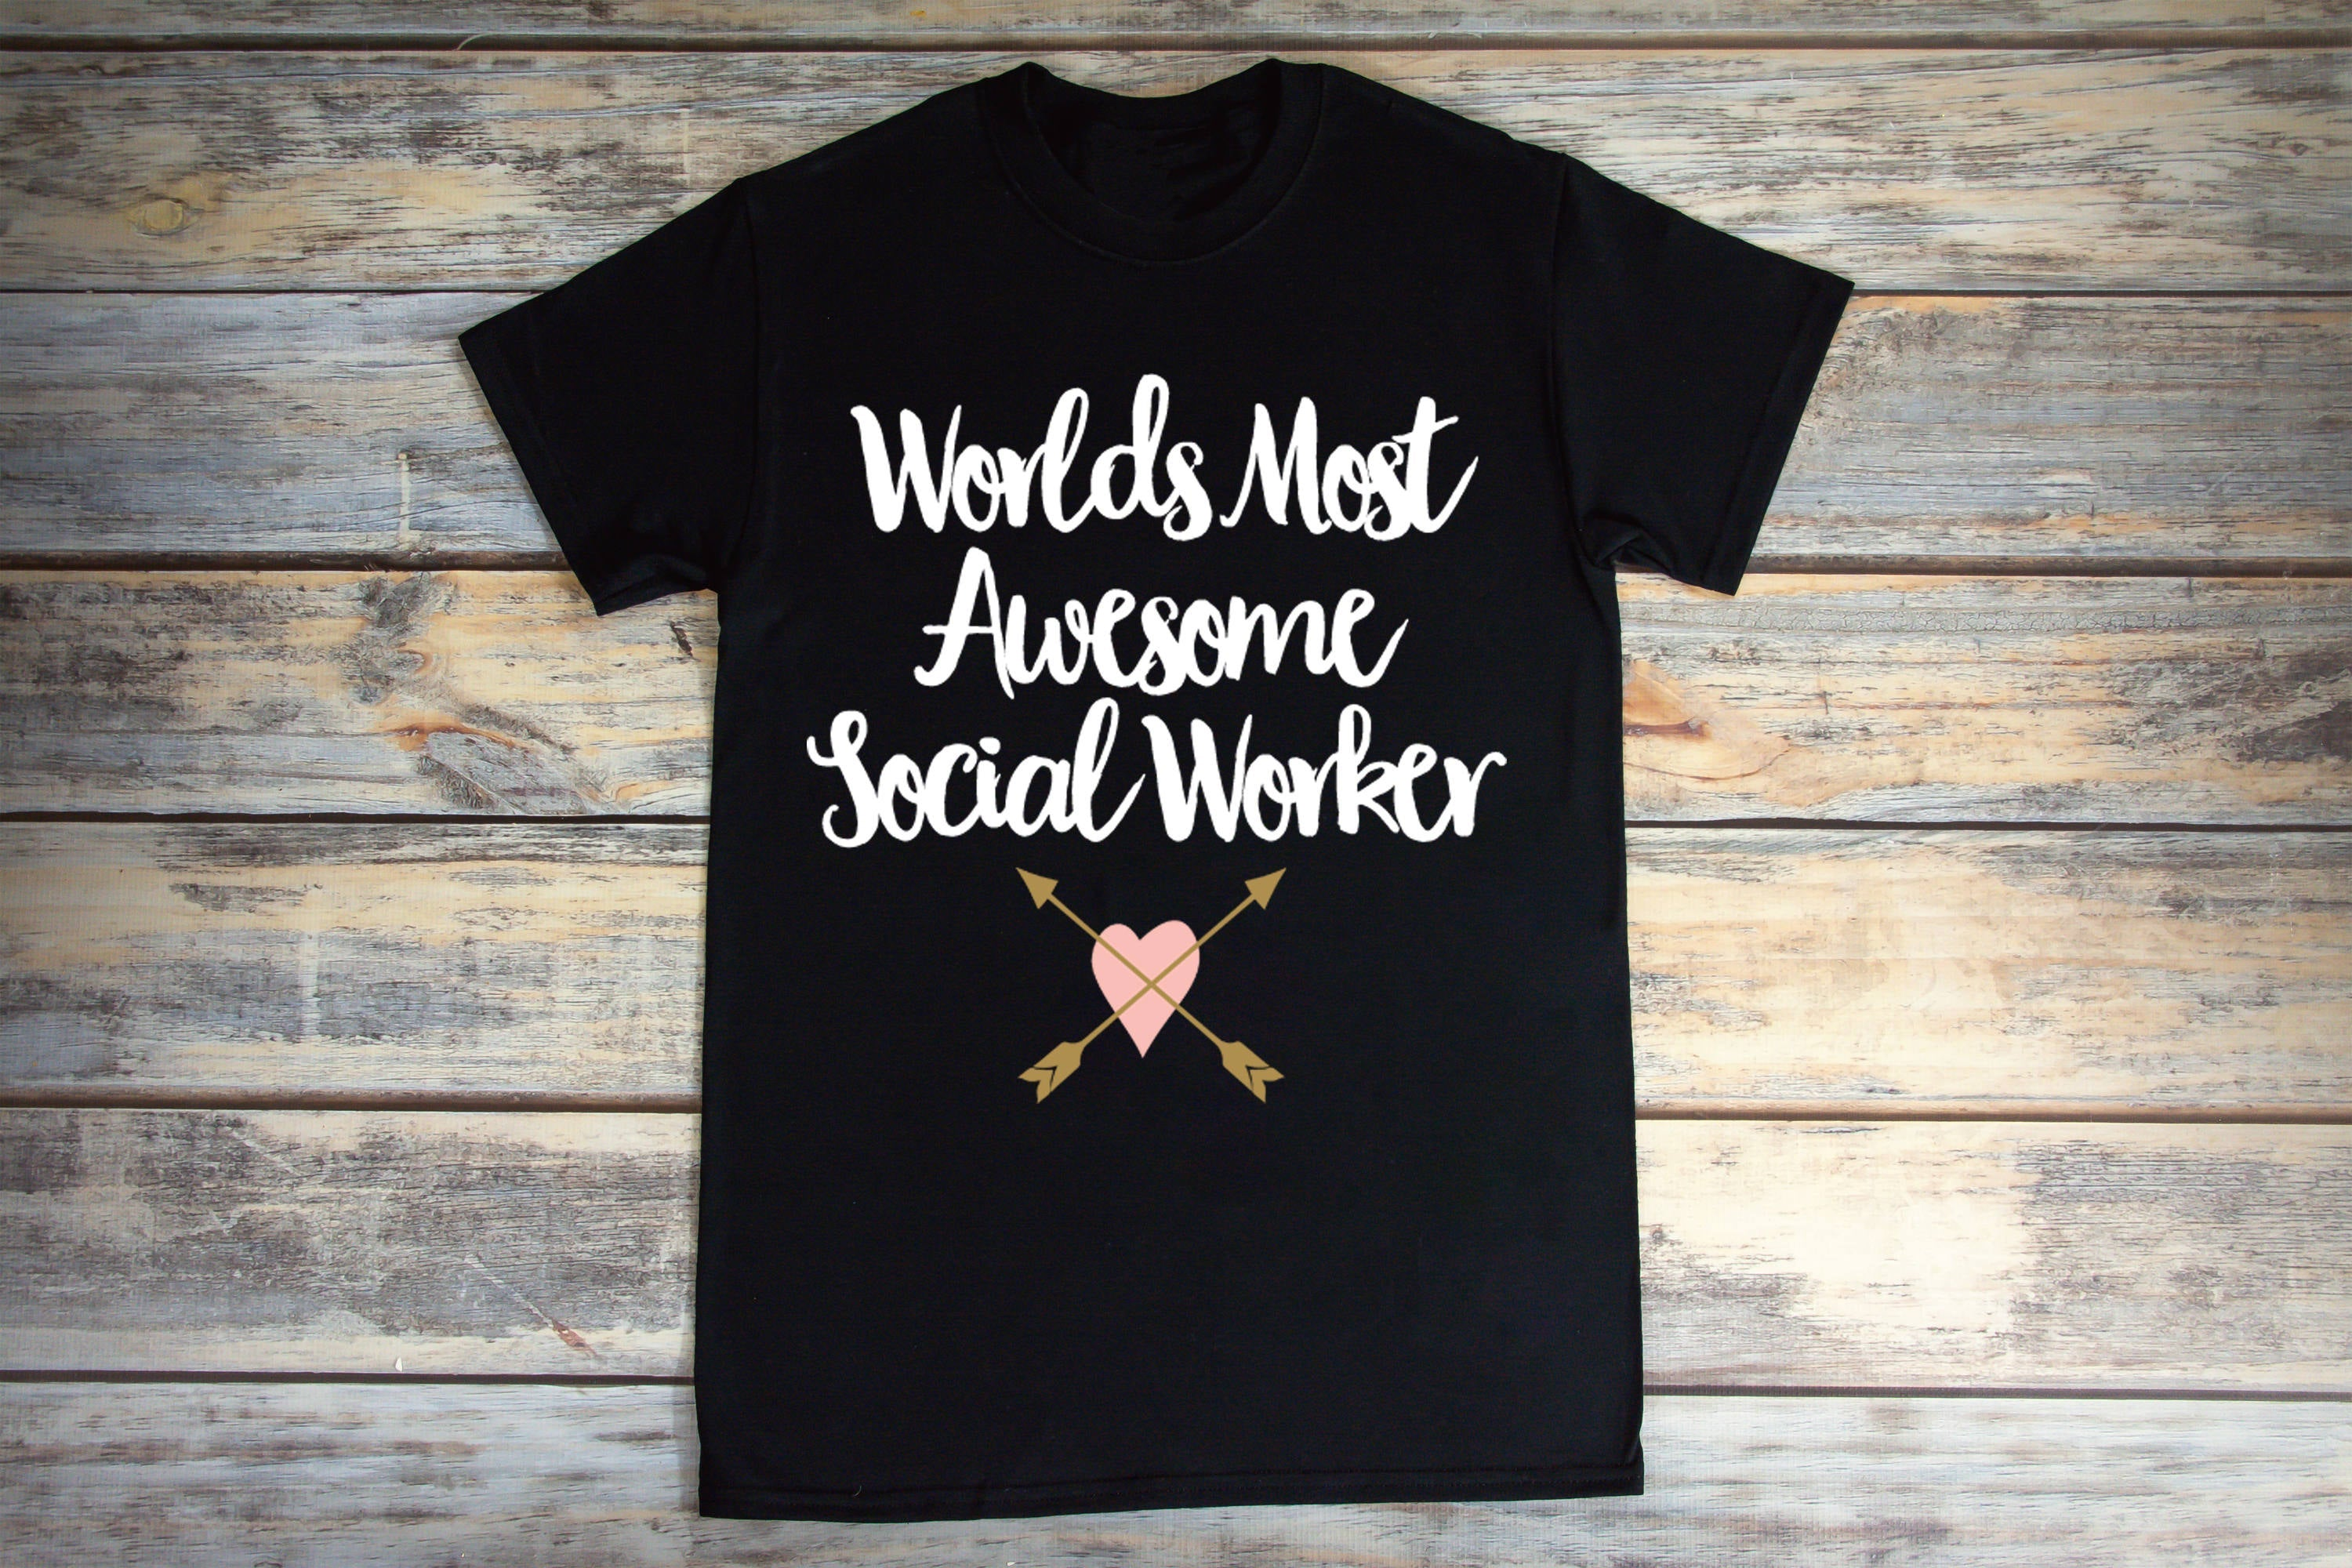 Worlds Most Awesome Social Worker Shirt Unisex Shirt Cotton Shirt Funny Tee Hilarious Shirts Sarcasm Shirts Shirts for Girls Guys